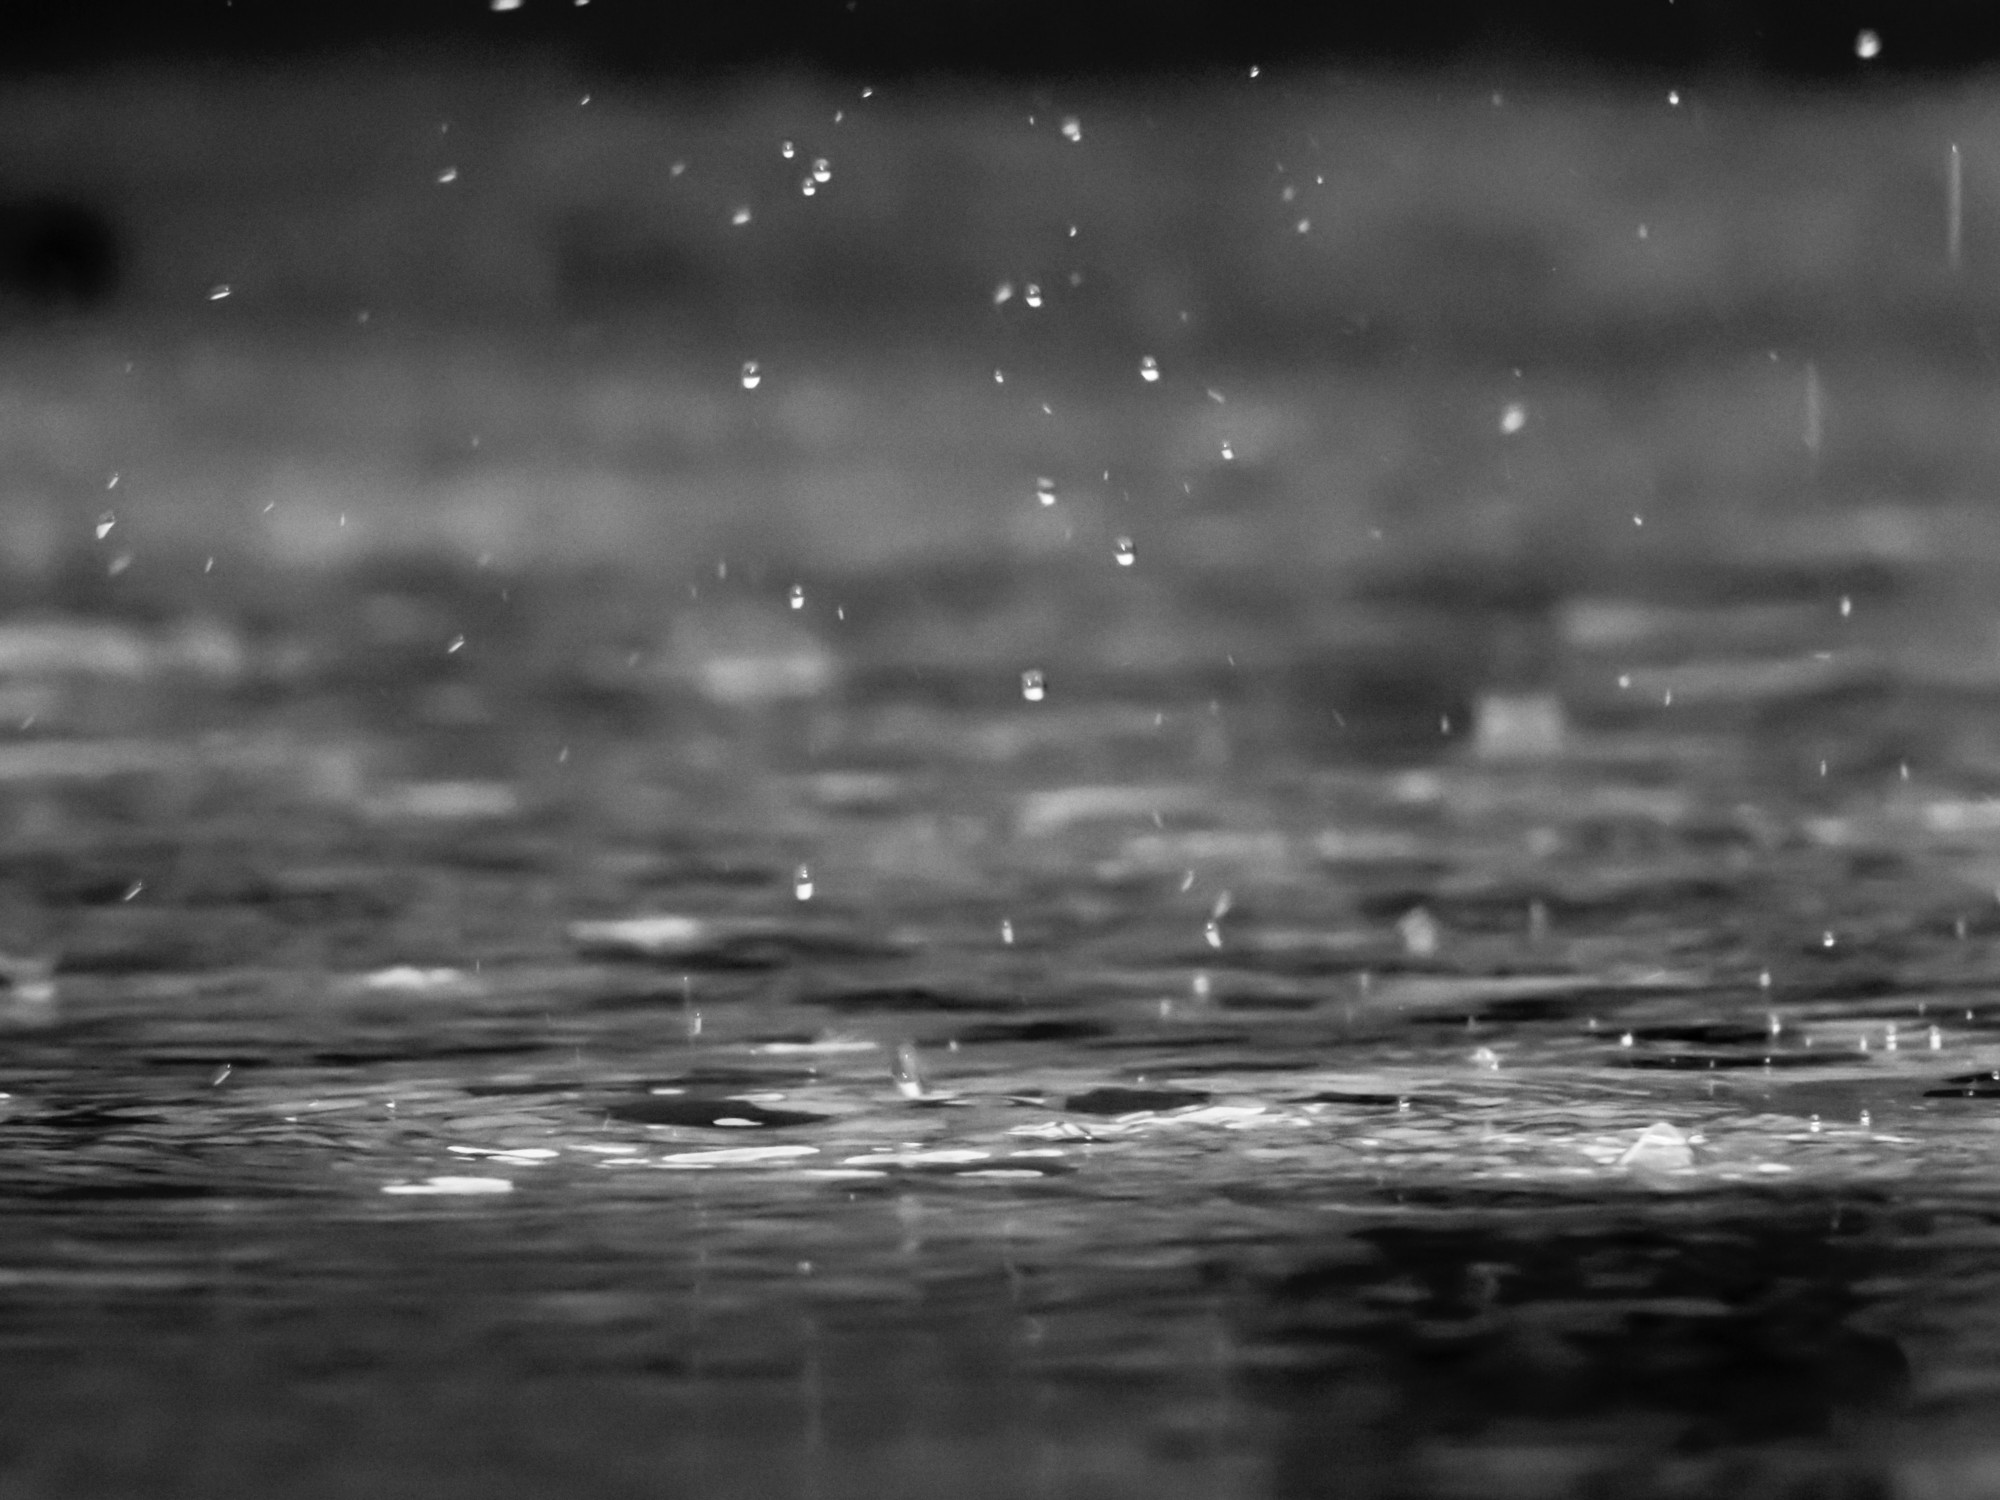 Black and white close-up photo of rain bouncing into puddle.